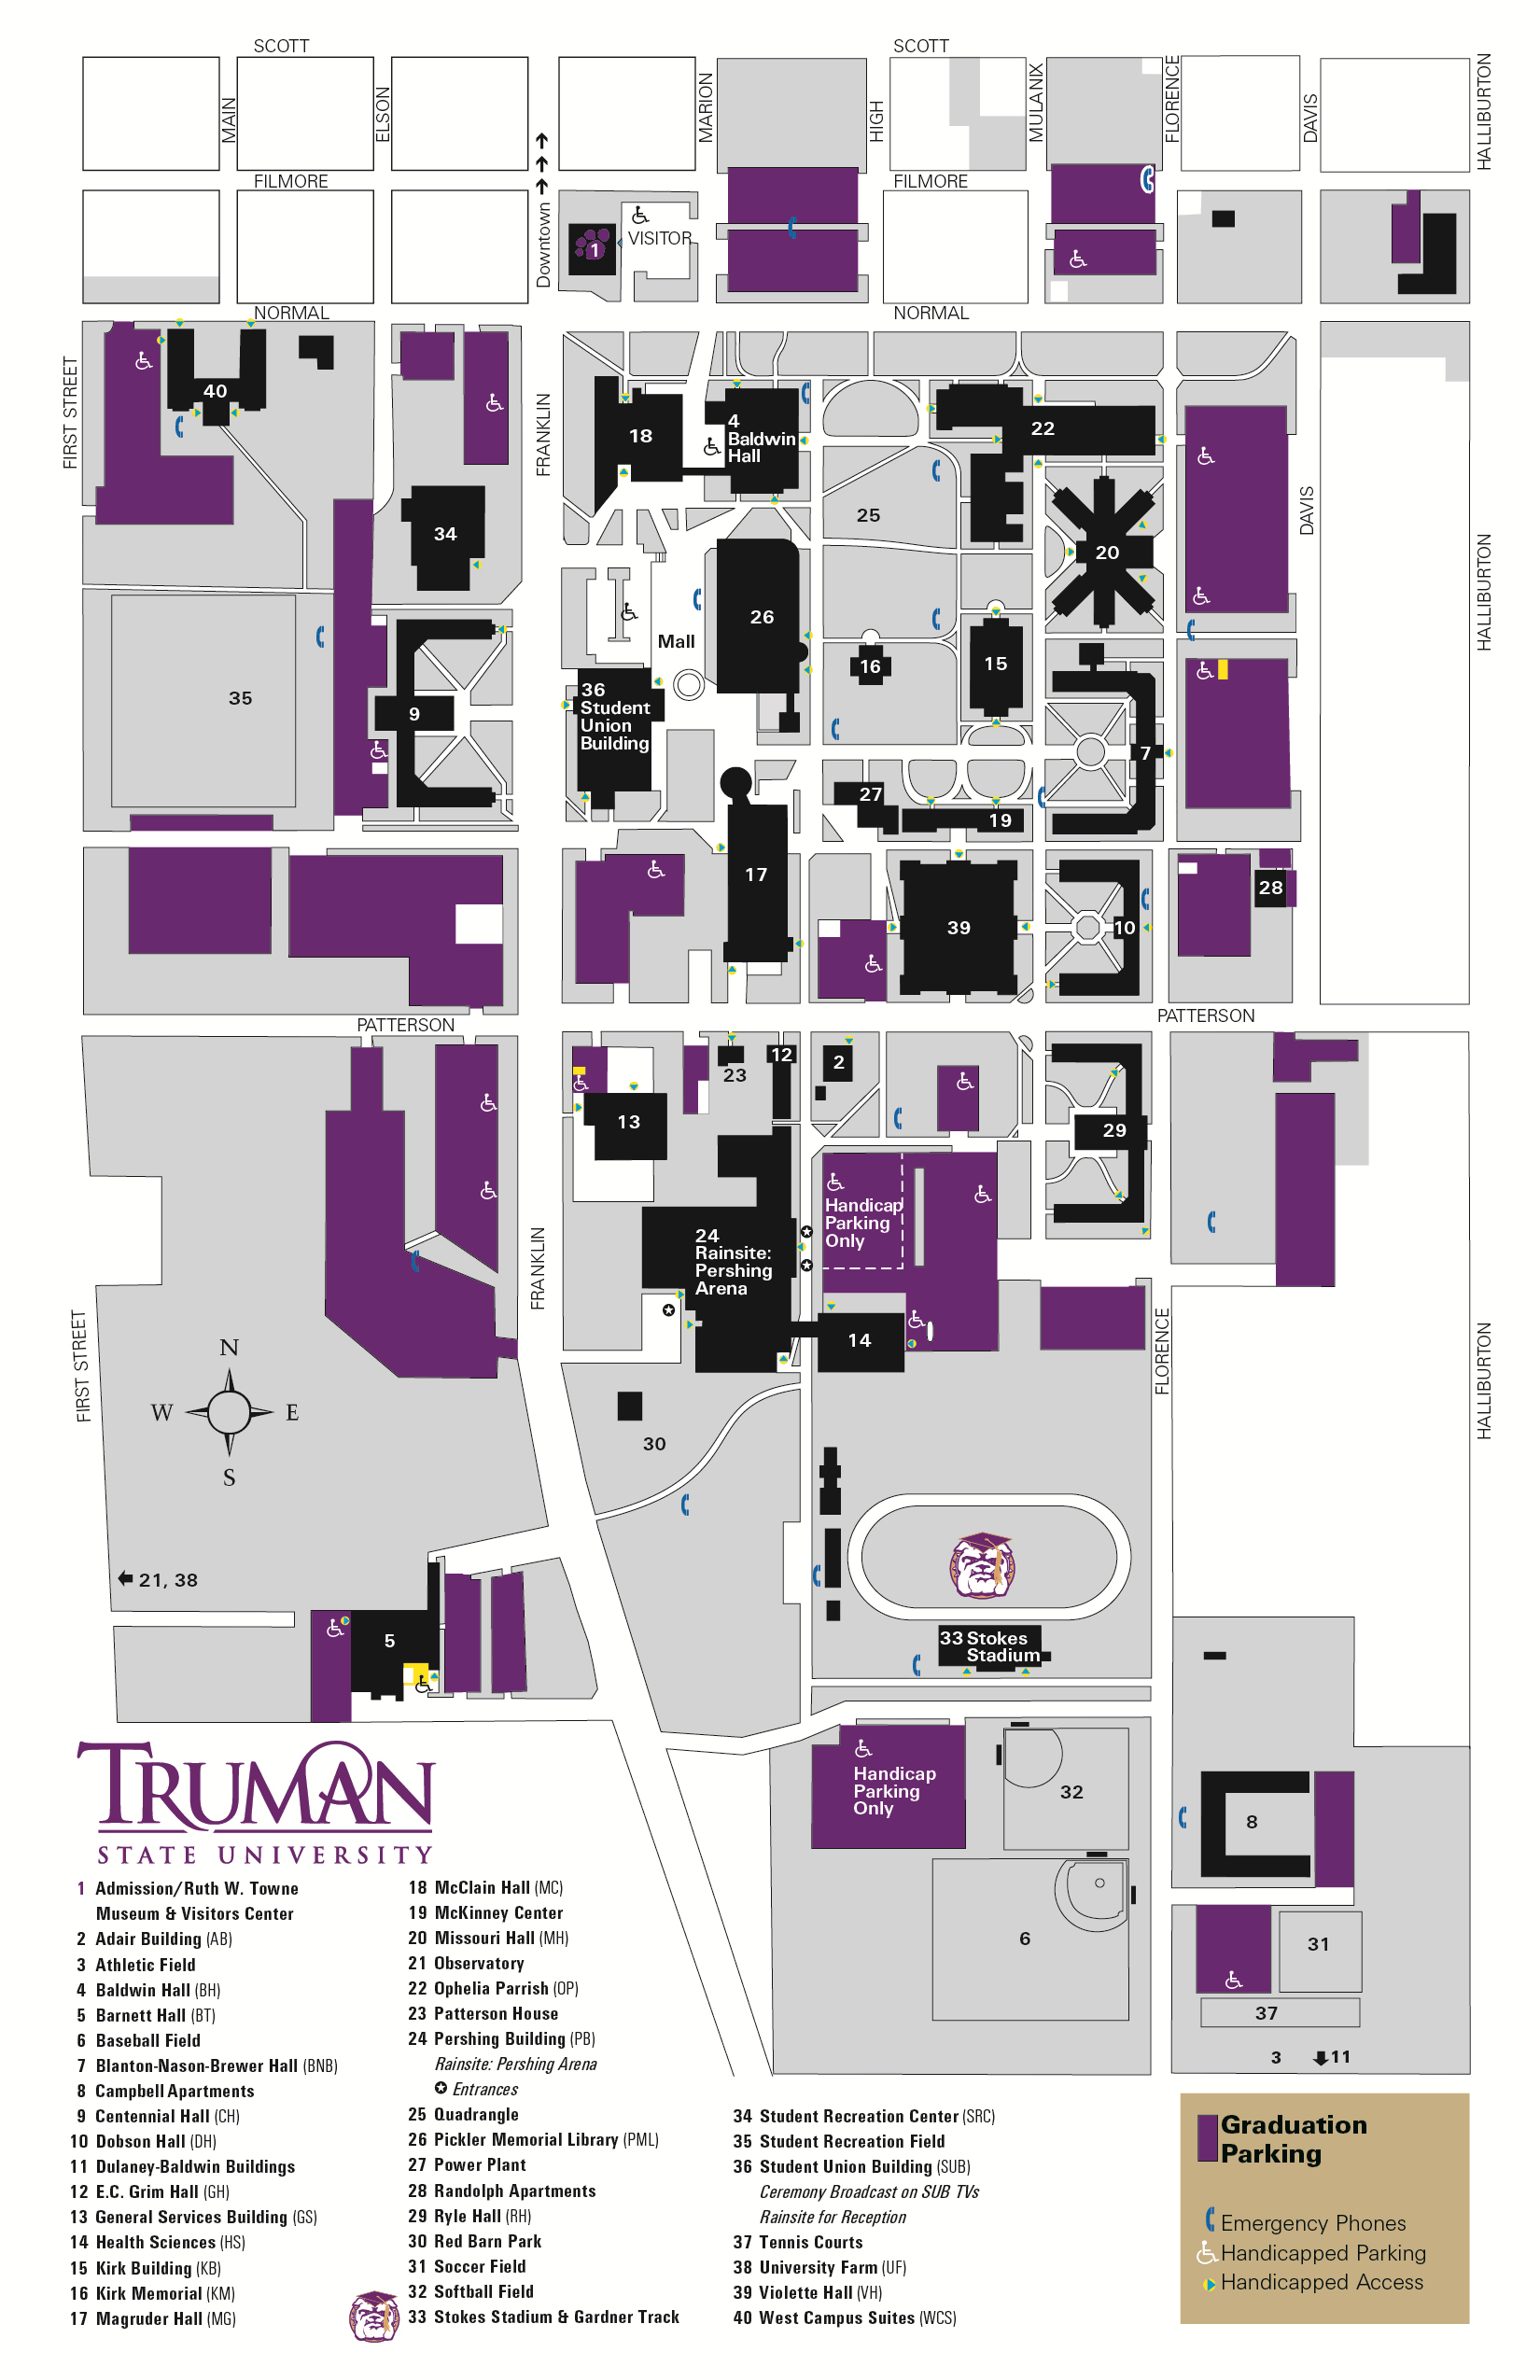 Parking Map for Commencement